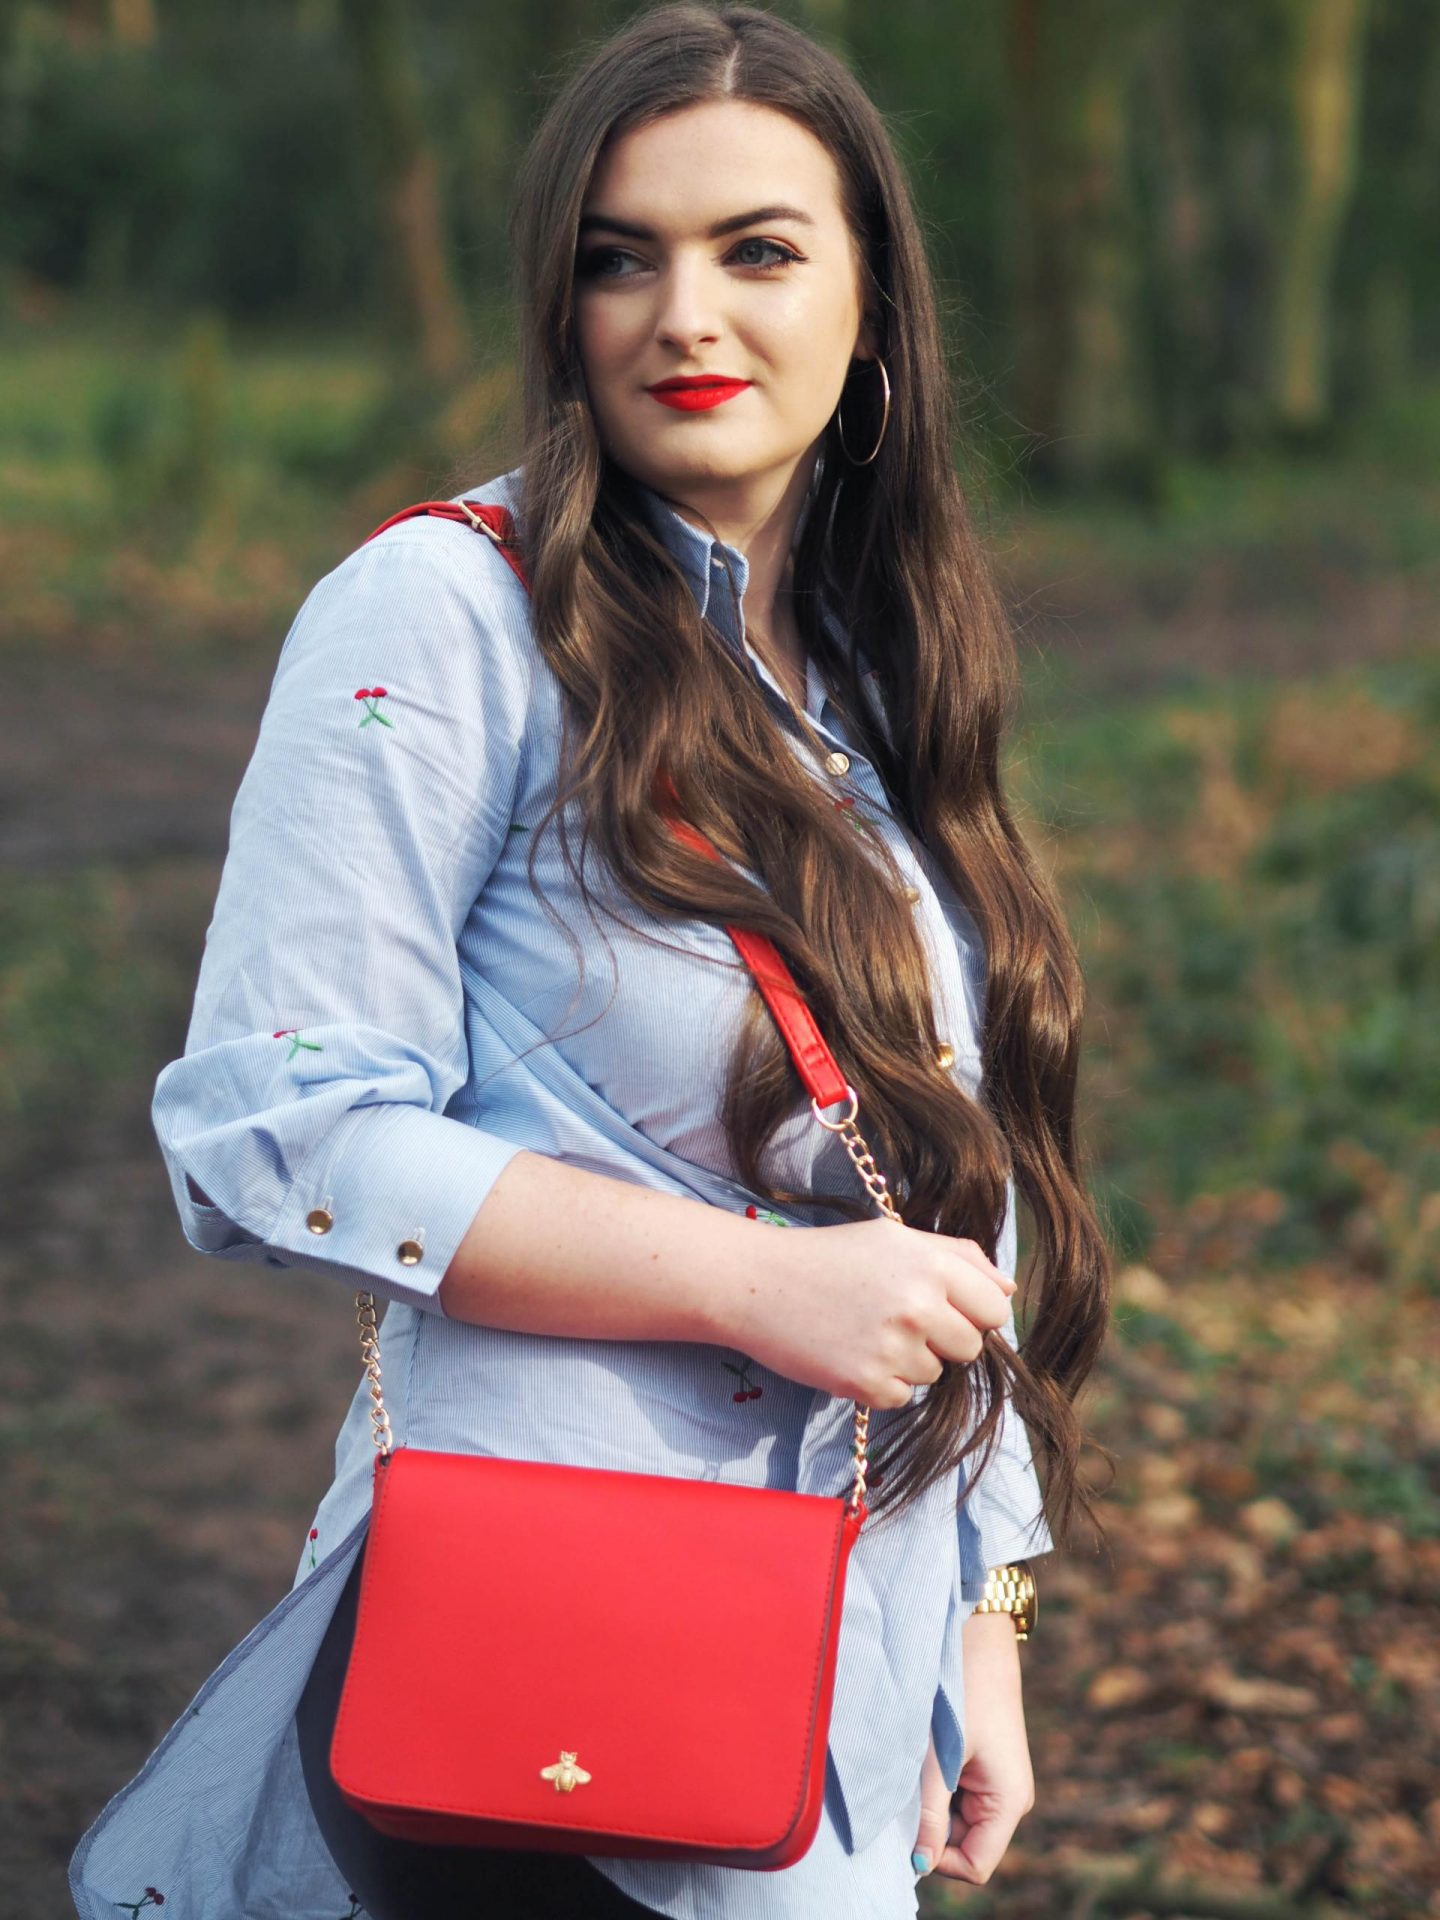 Cherry Tie Shirt with Closet London - Rachel Nicole UK Blogger